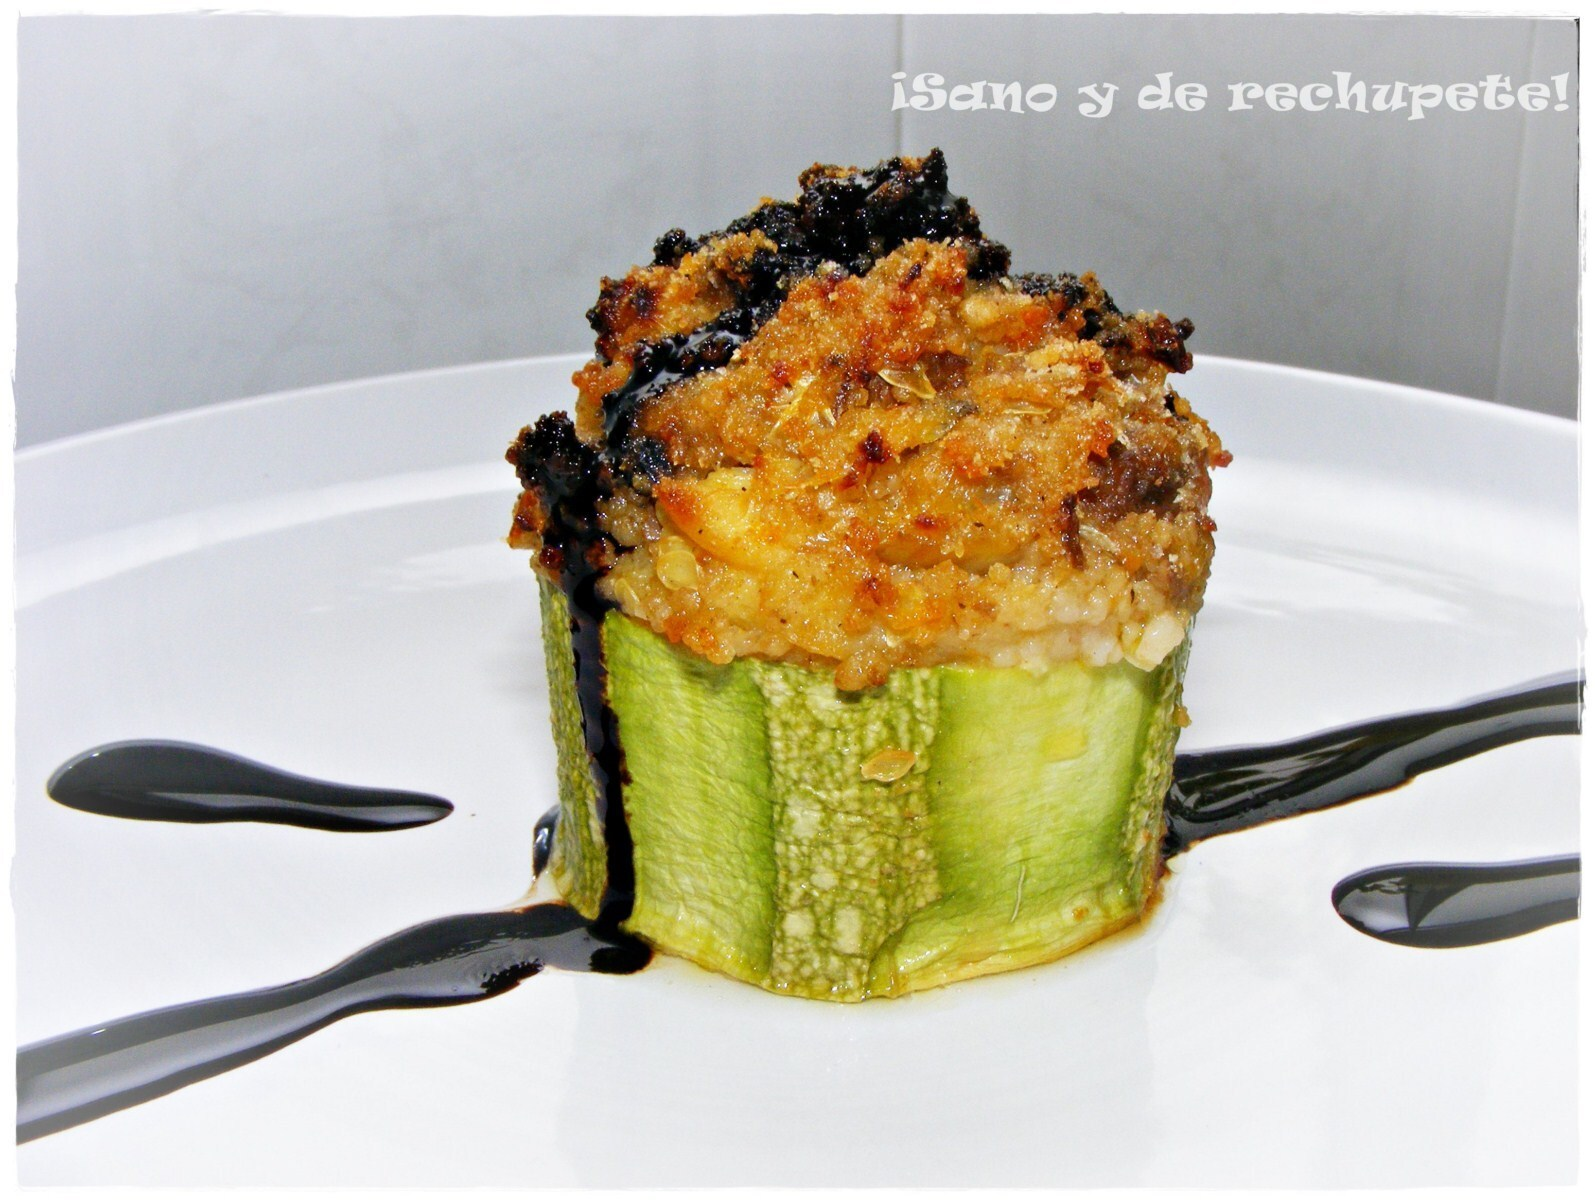 Calabacín relleno de cuscús y ternera estofada (zucchini stuffed with couscous and beef stew)